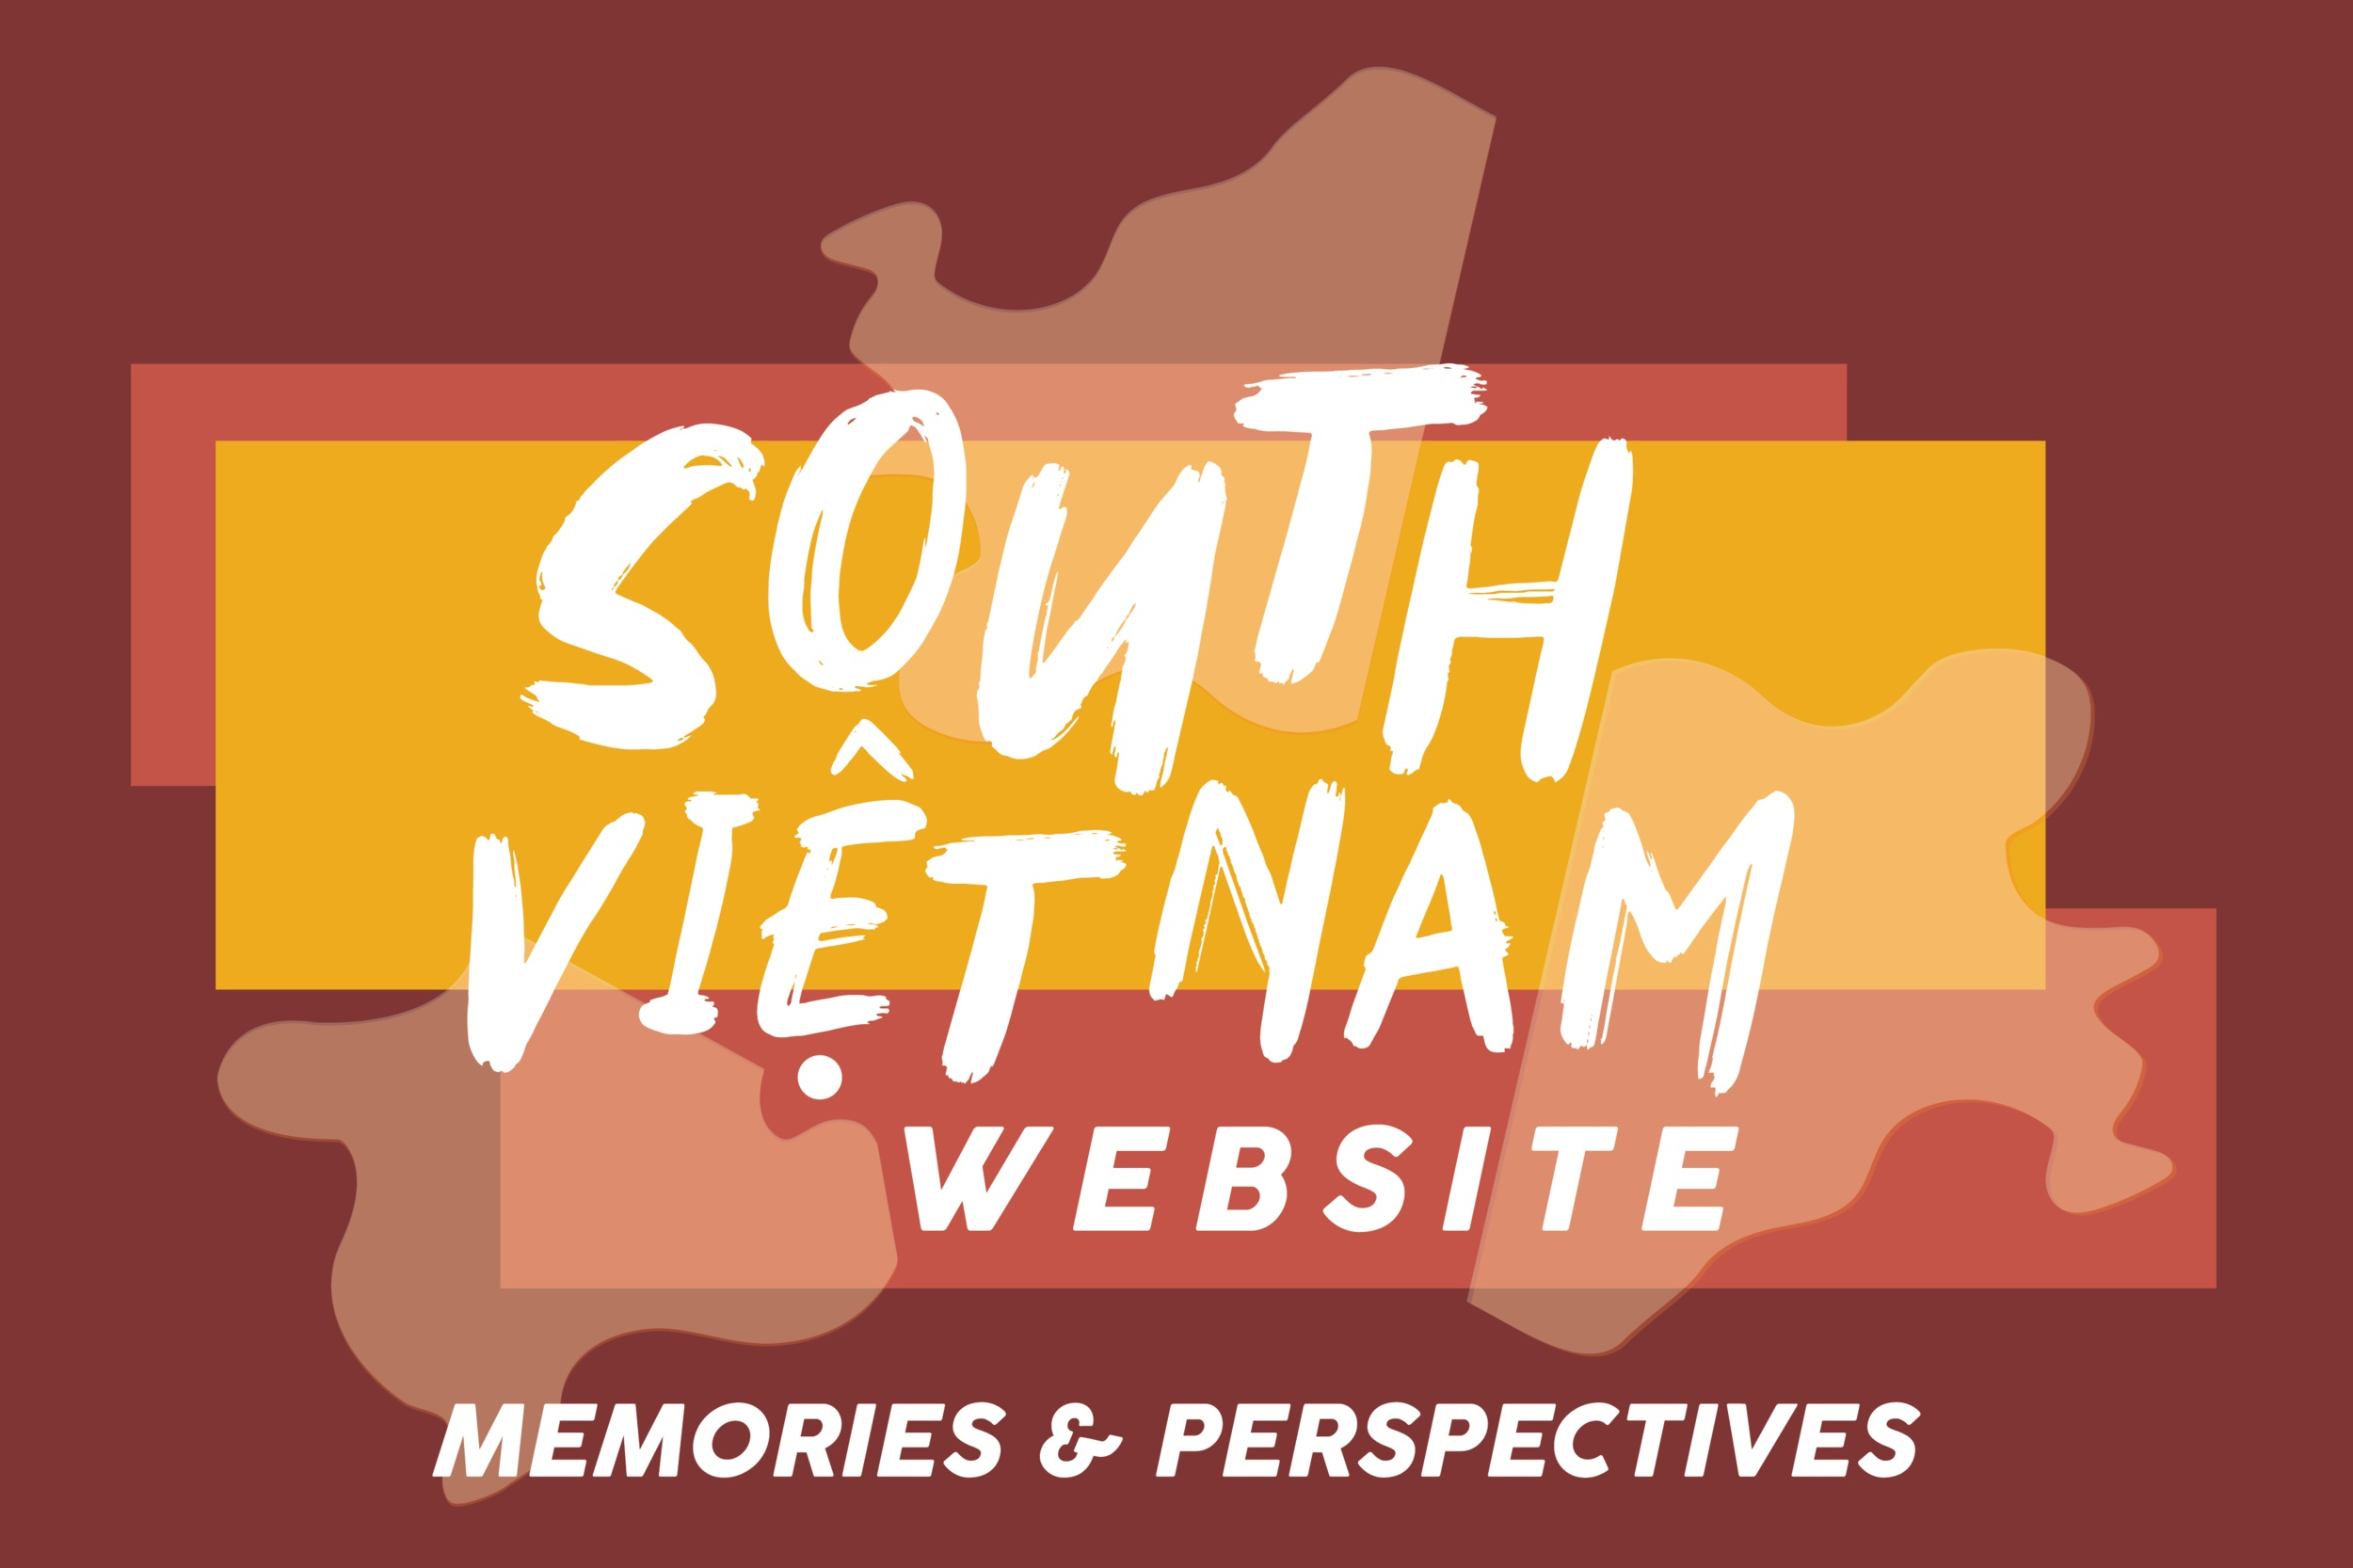 svietnam_website-01.jpg